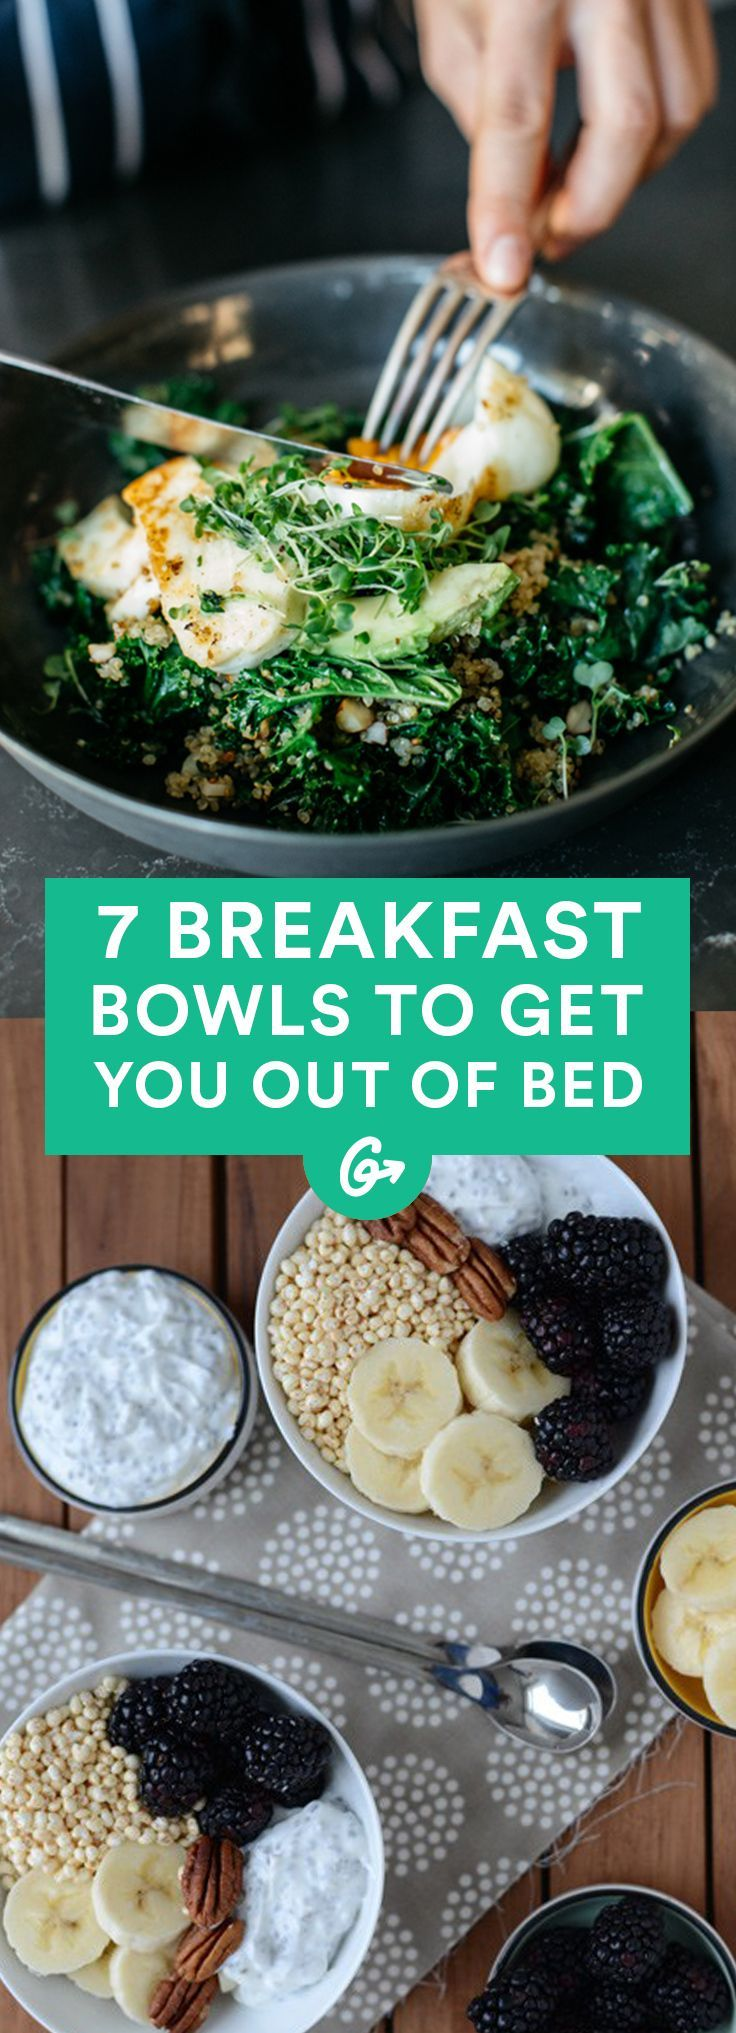 7 Breakfast Bowls to Get You Out of Bed